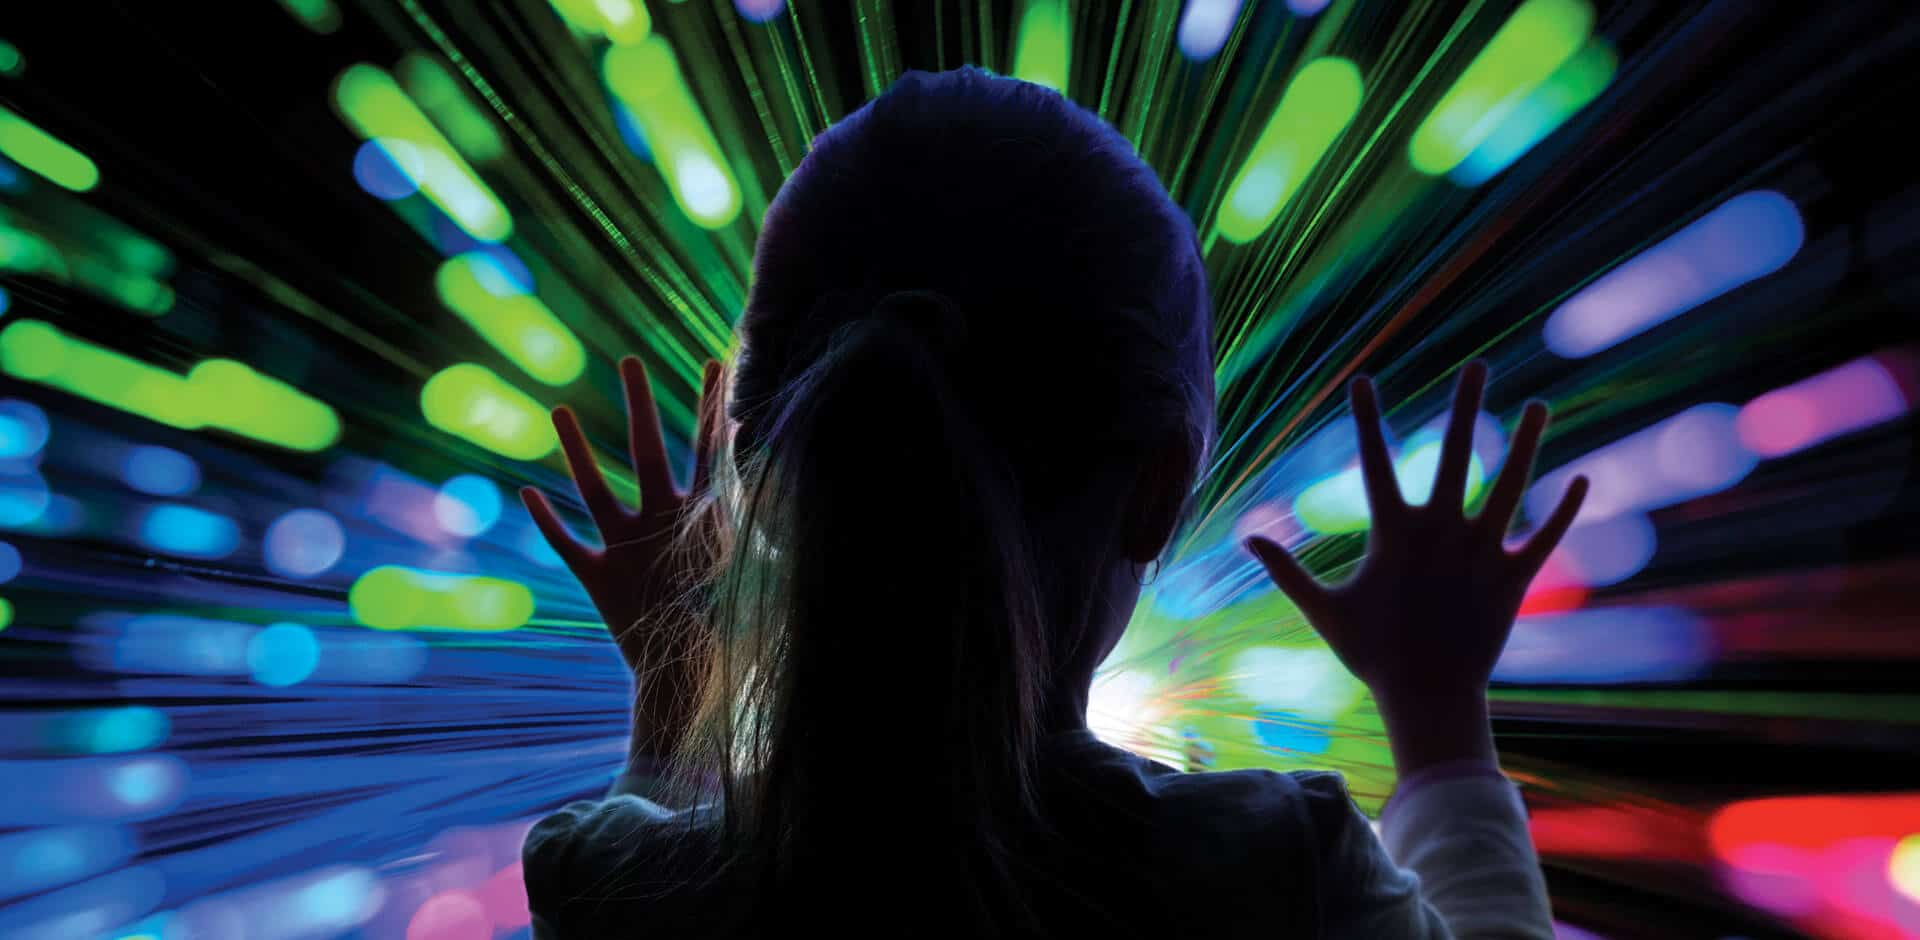 Girl reaches up toward colored lights